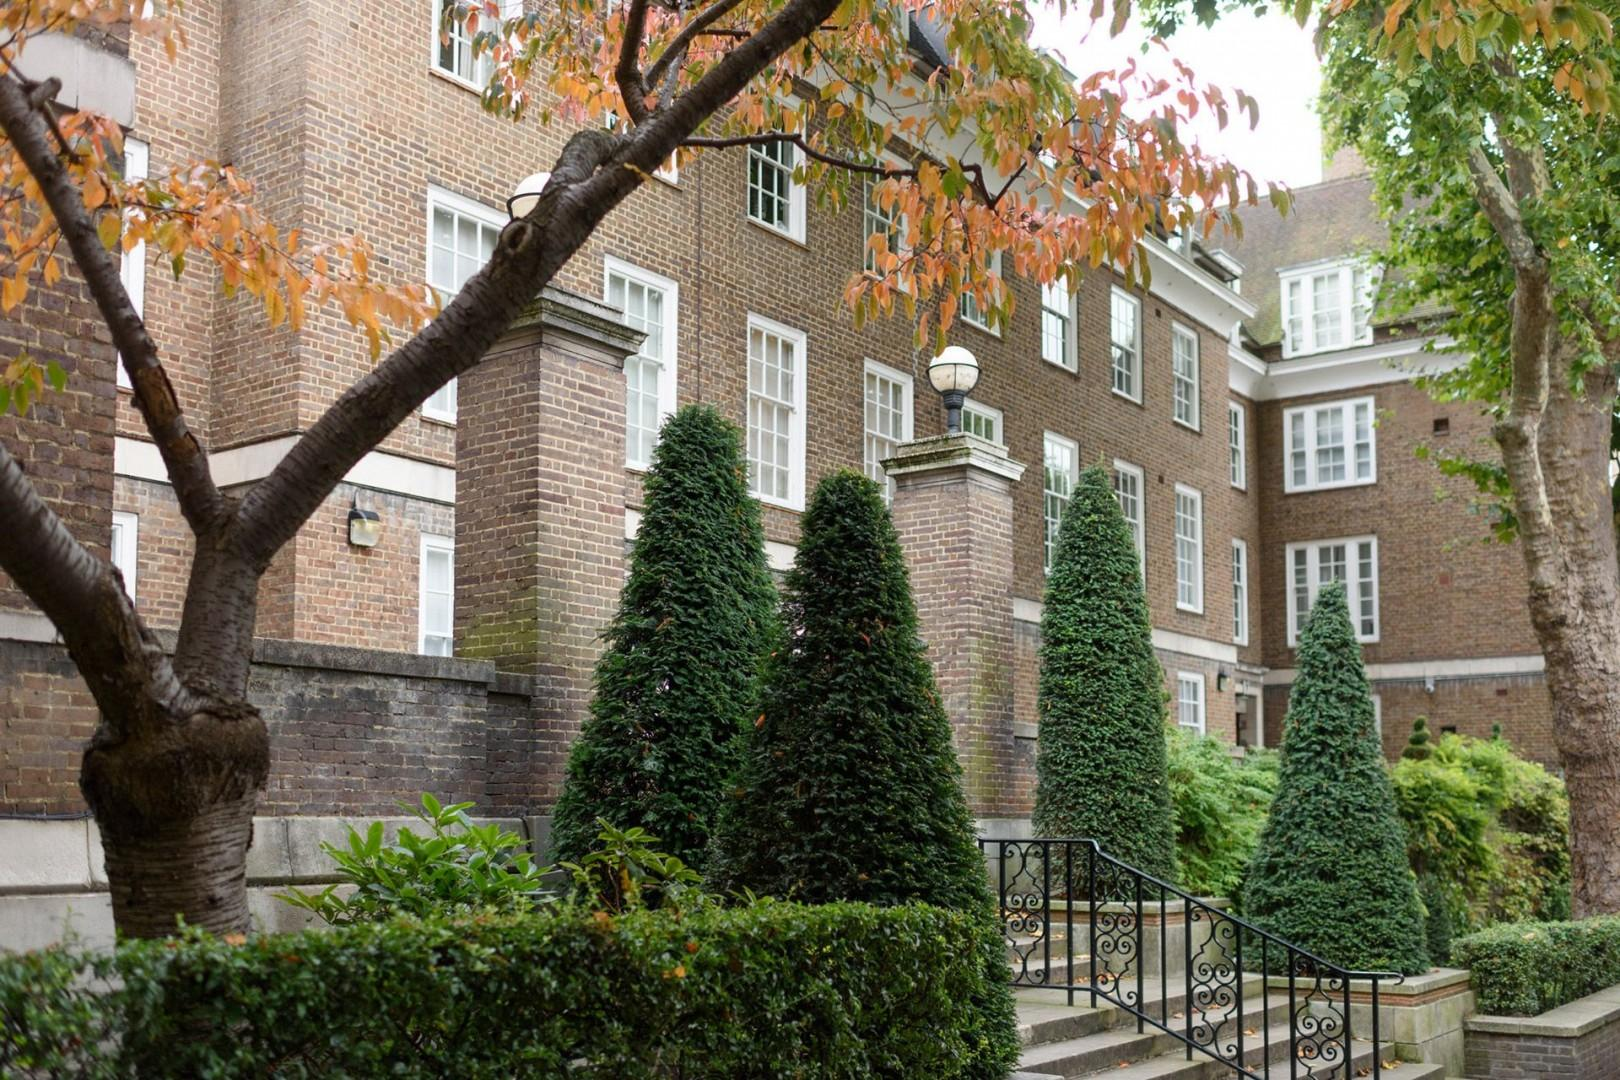 CMS-39-(Walk up the stairs to this grand old house)-183991332-1510040268-GL-kensington-church-walk-4-edit-1